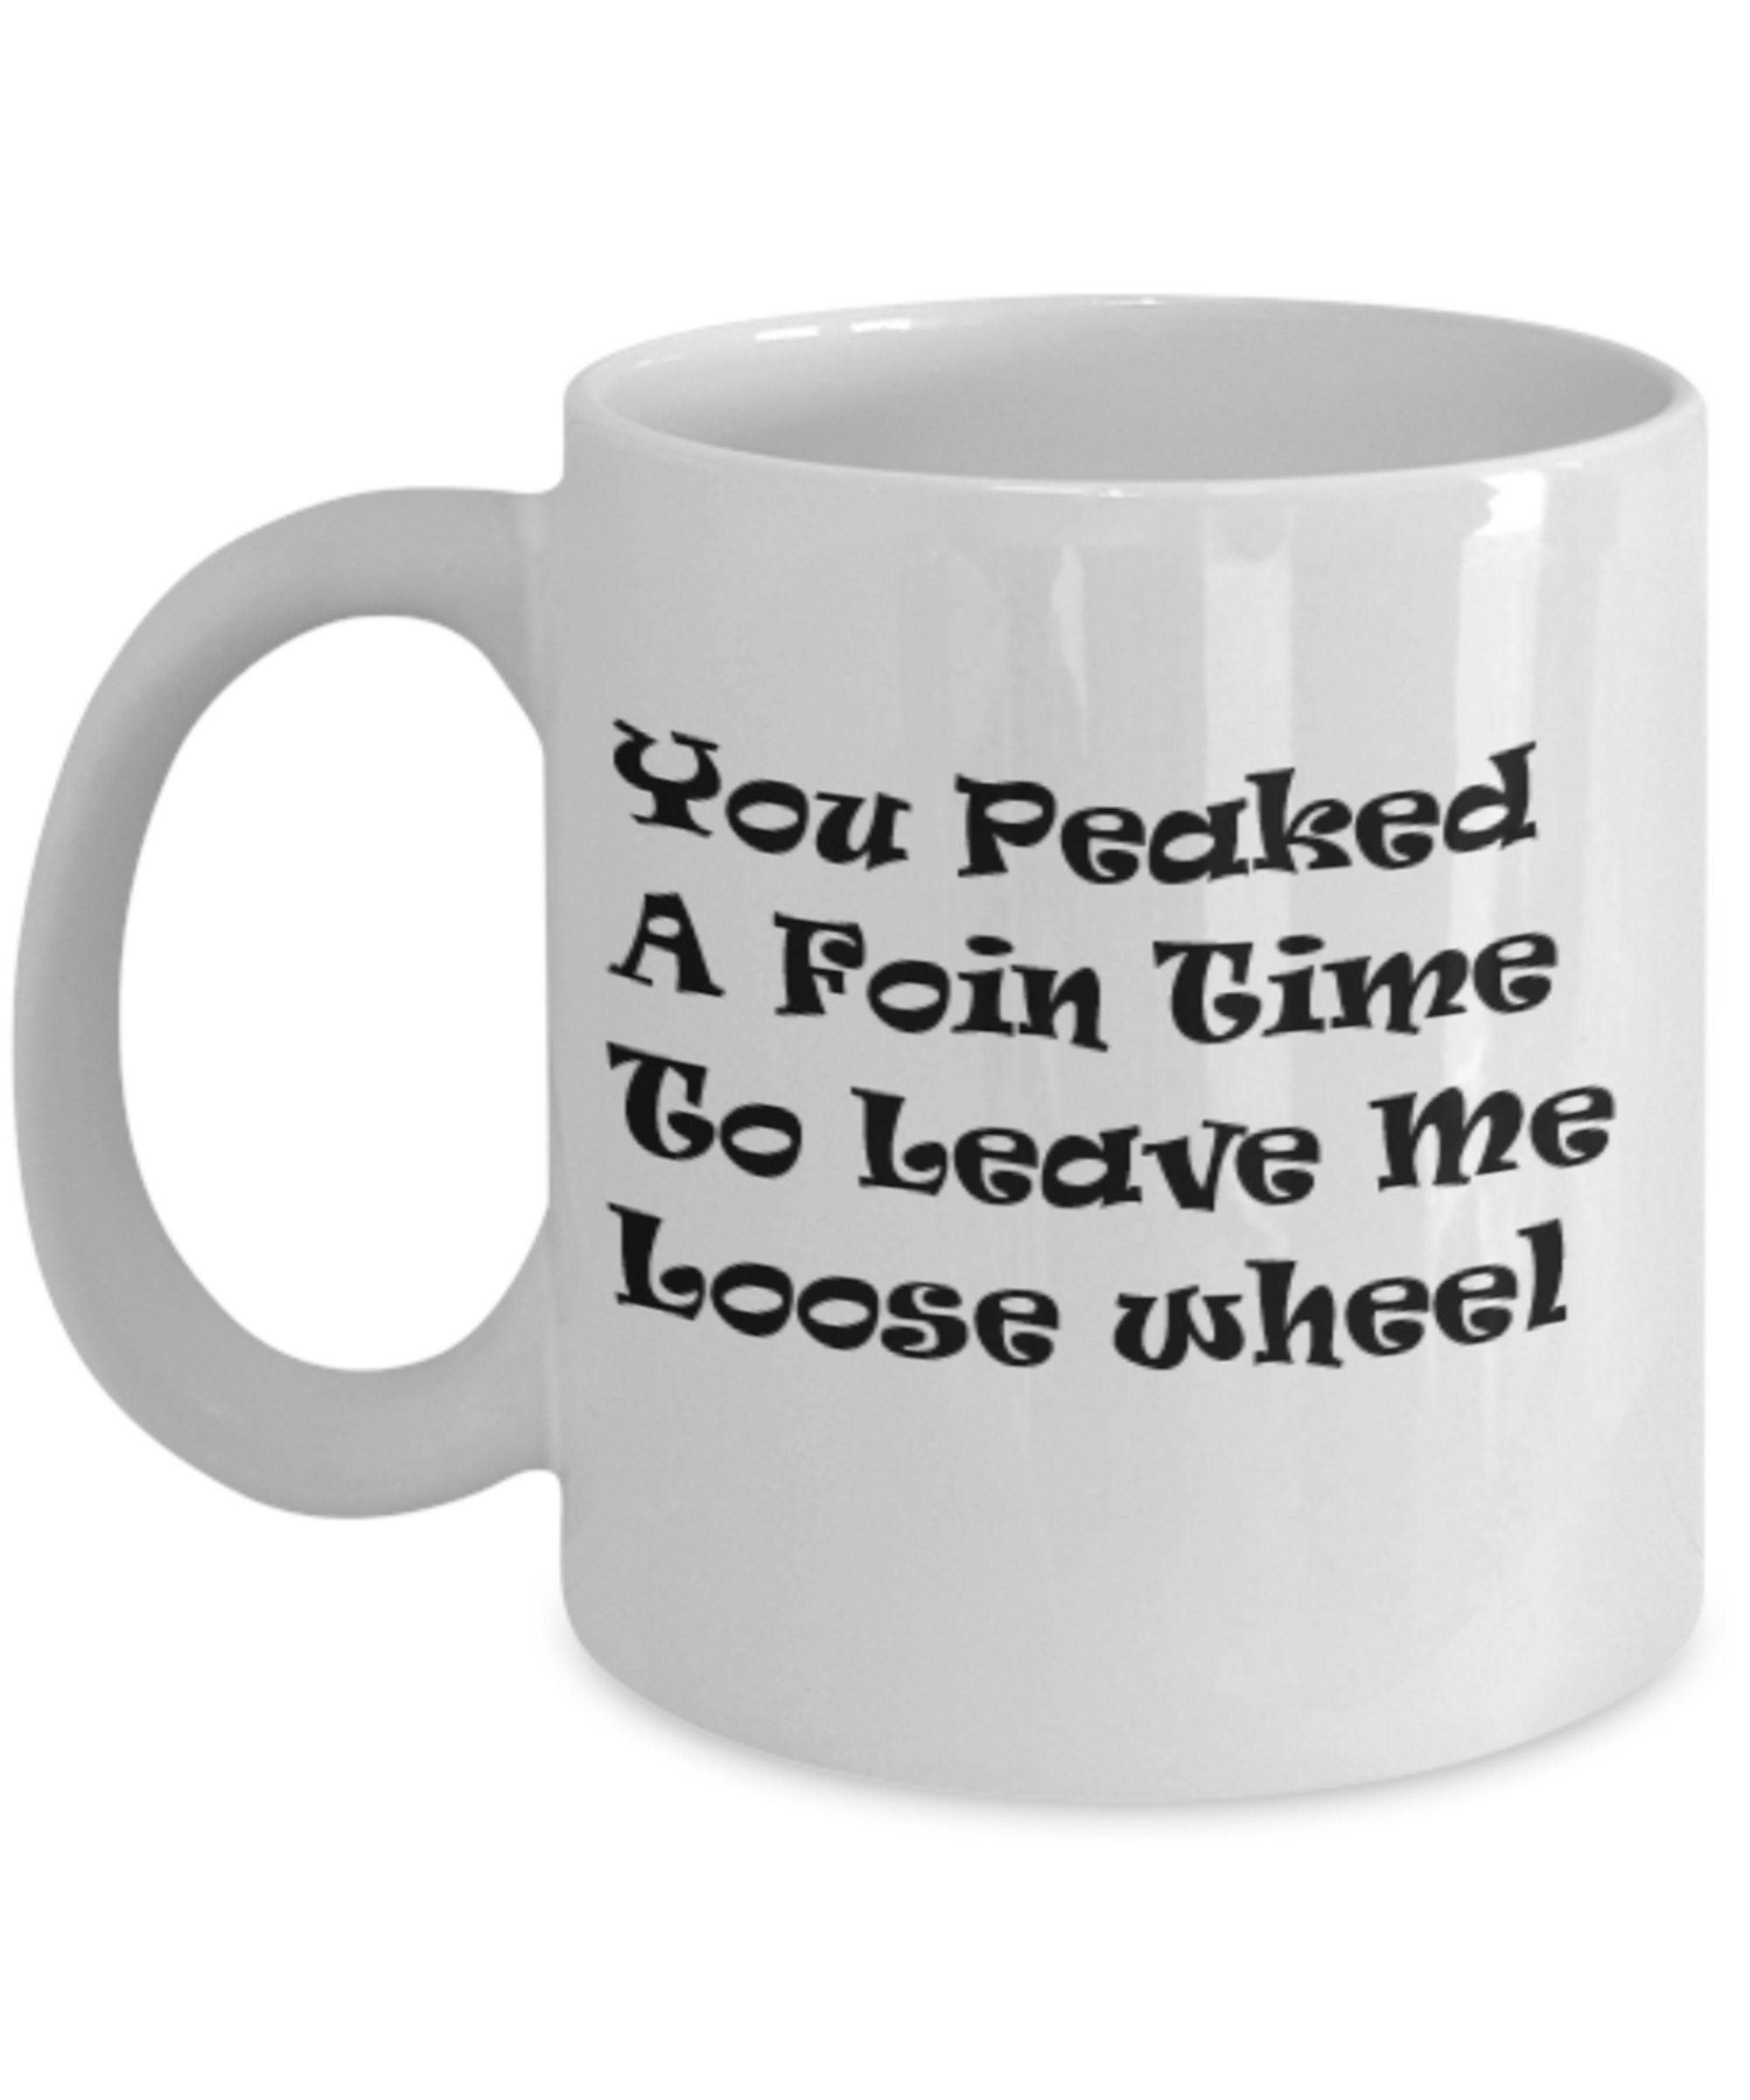 Misheard Lyrics Funny Mug by Vintagestopover on Etsy in